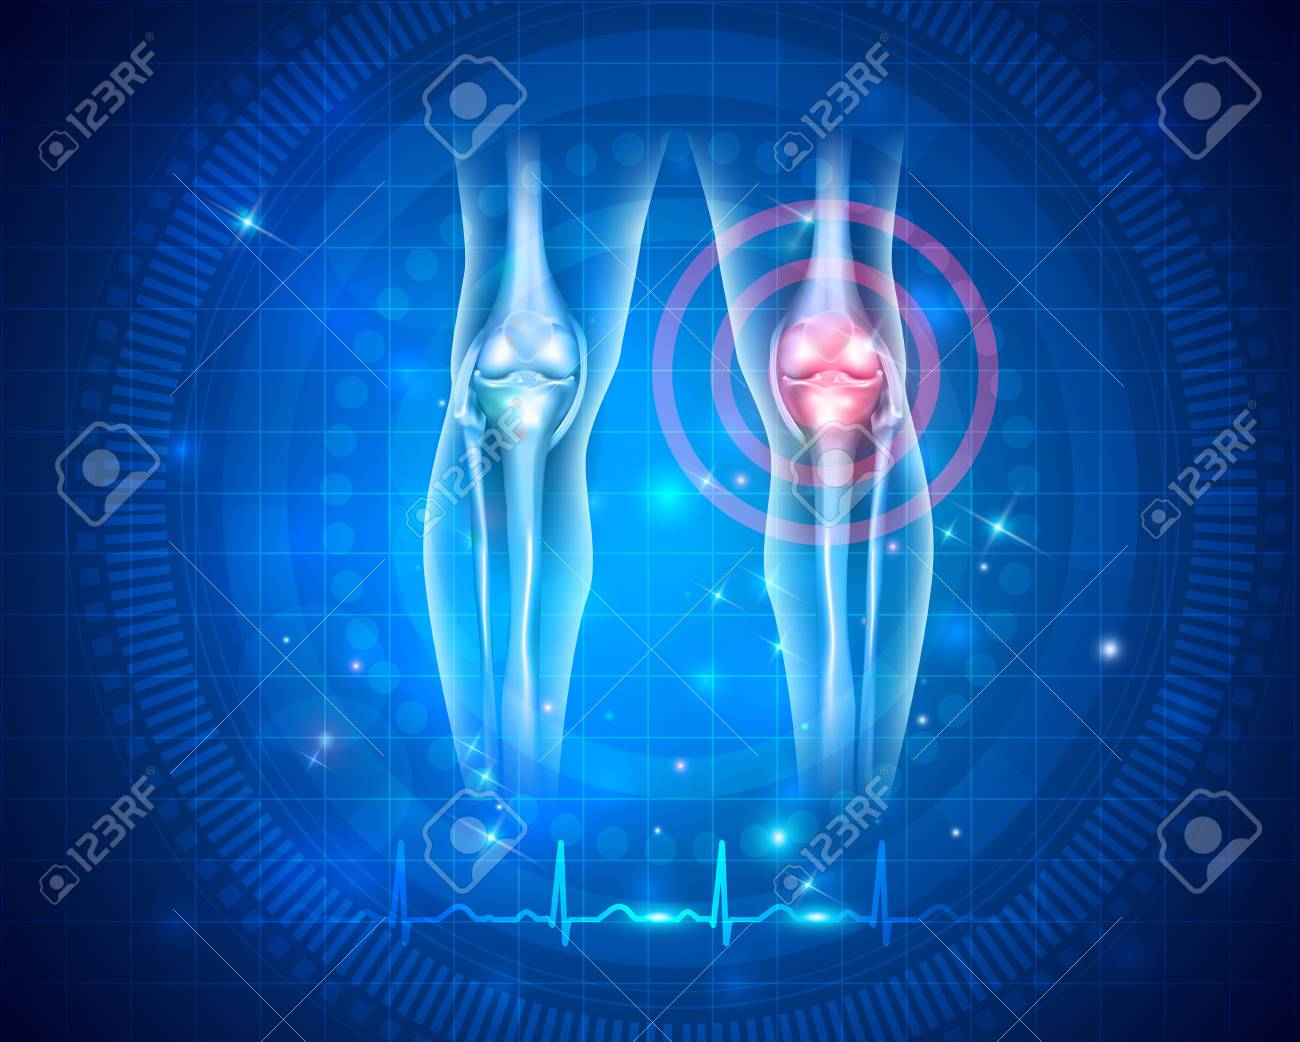 Damaged joint and normal cardiogram at the bottom, joint health care concept - 87283081